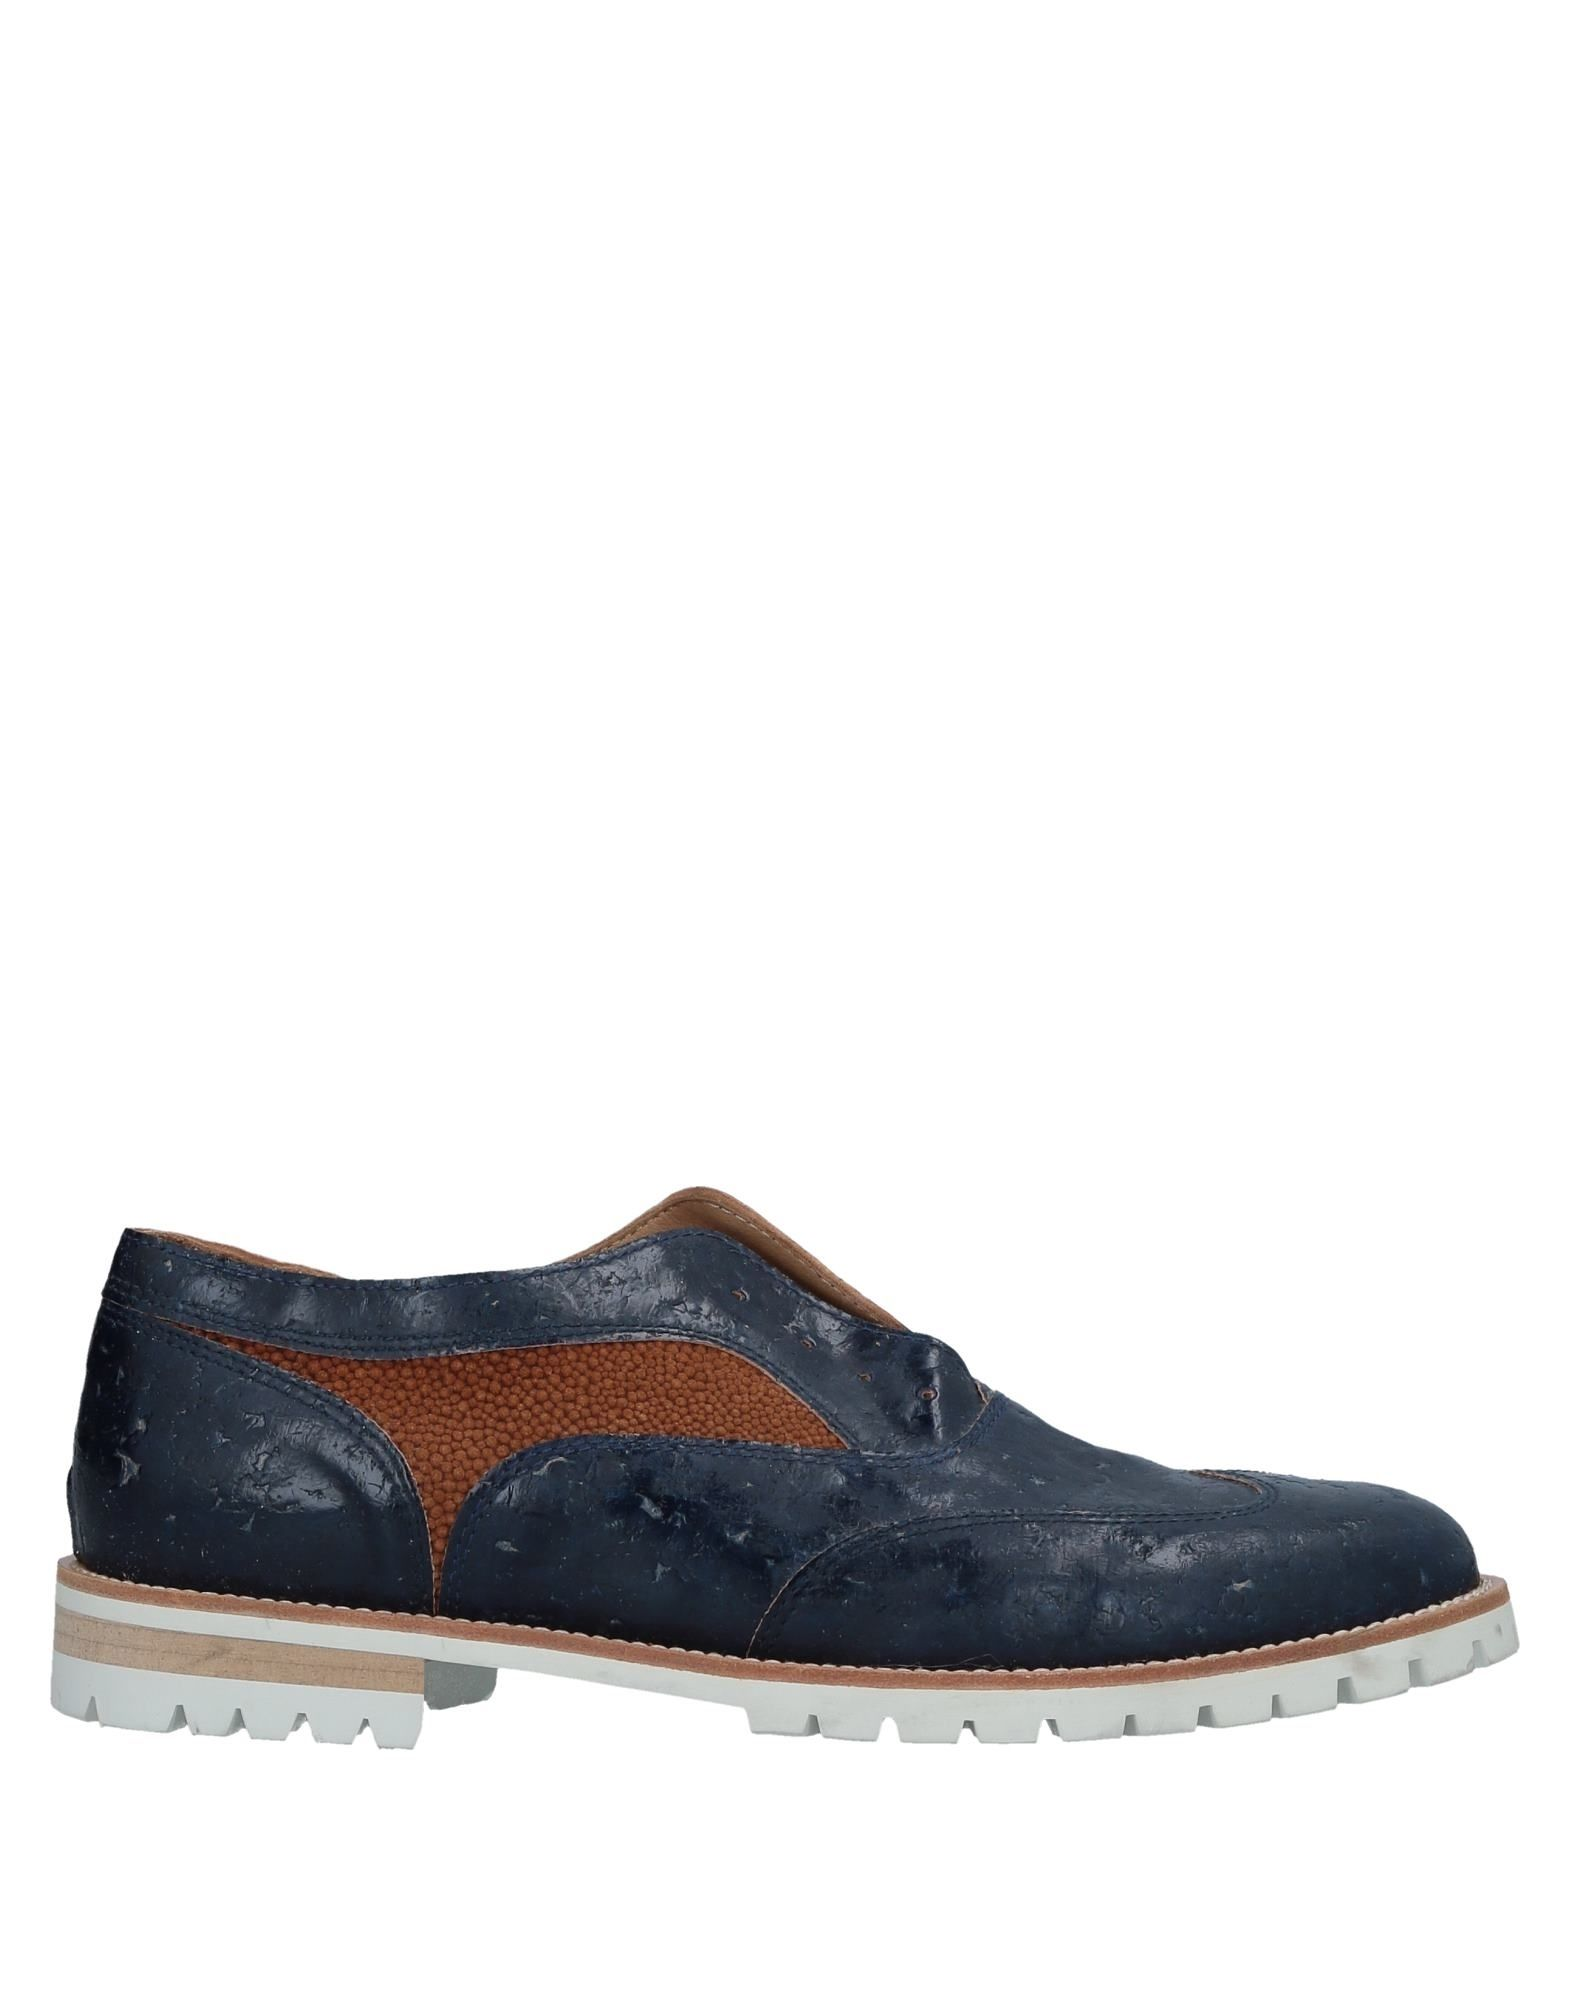 L'F SHOES Loafers in Blue